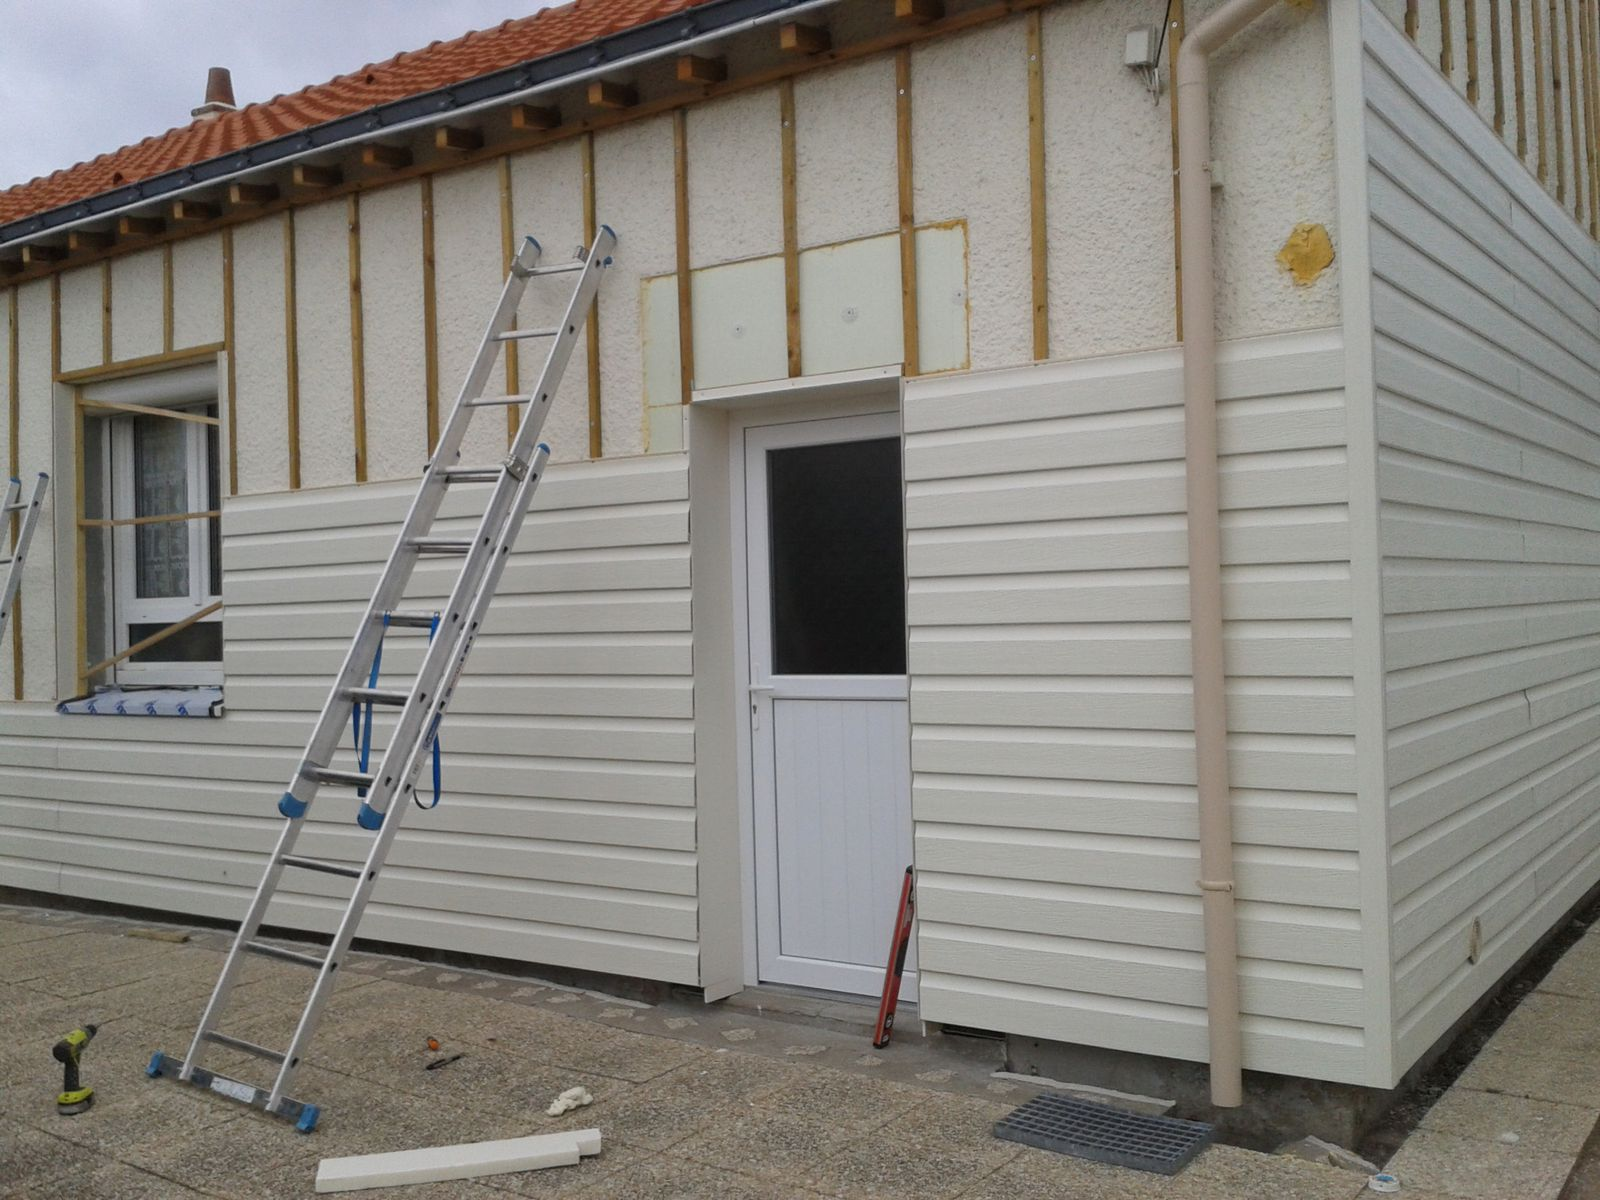 Bardage pvc brico depot salon with portail aluminium for Bardage de facade maison